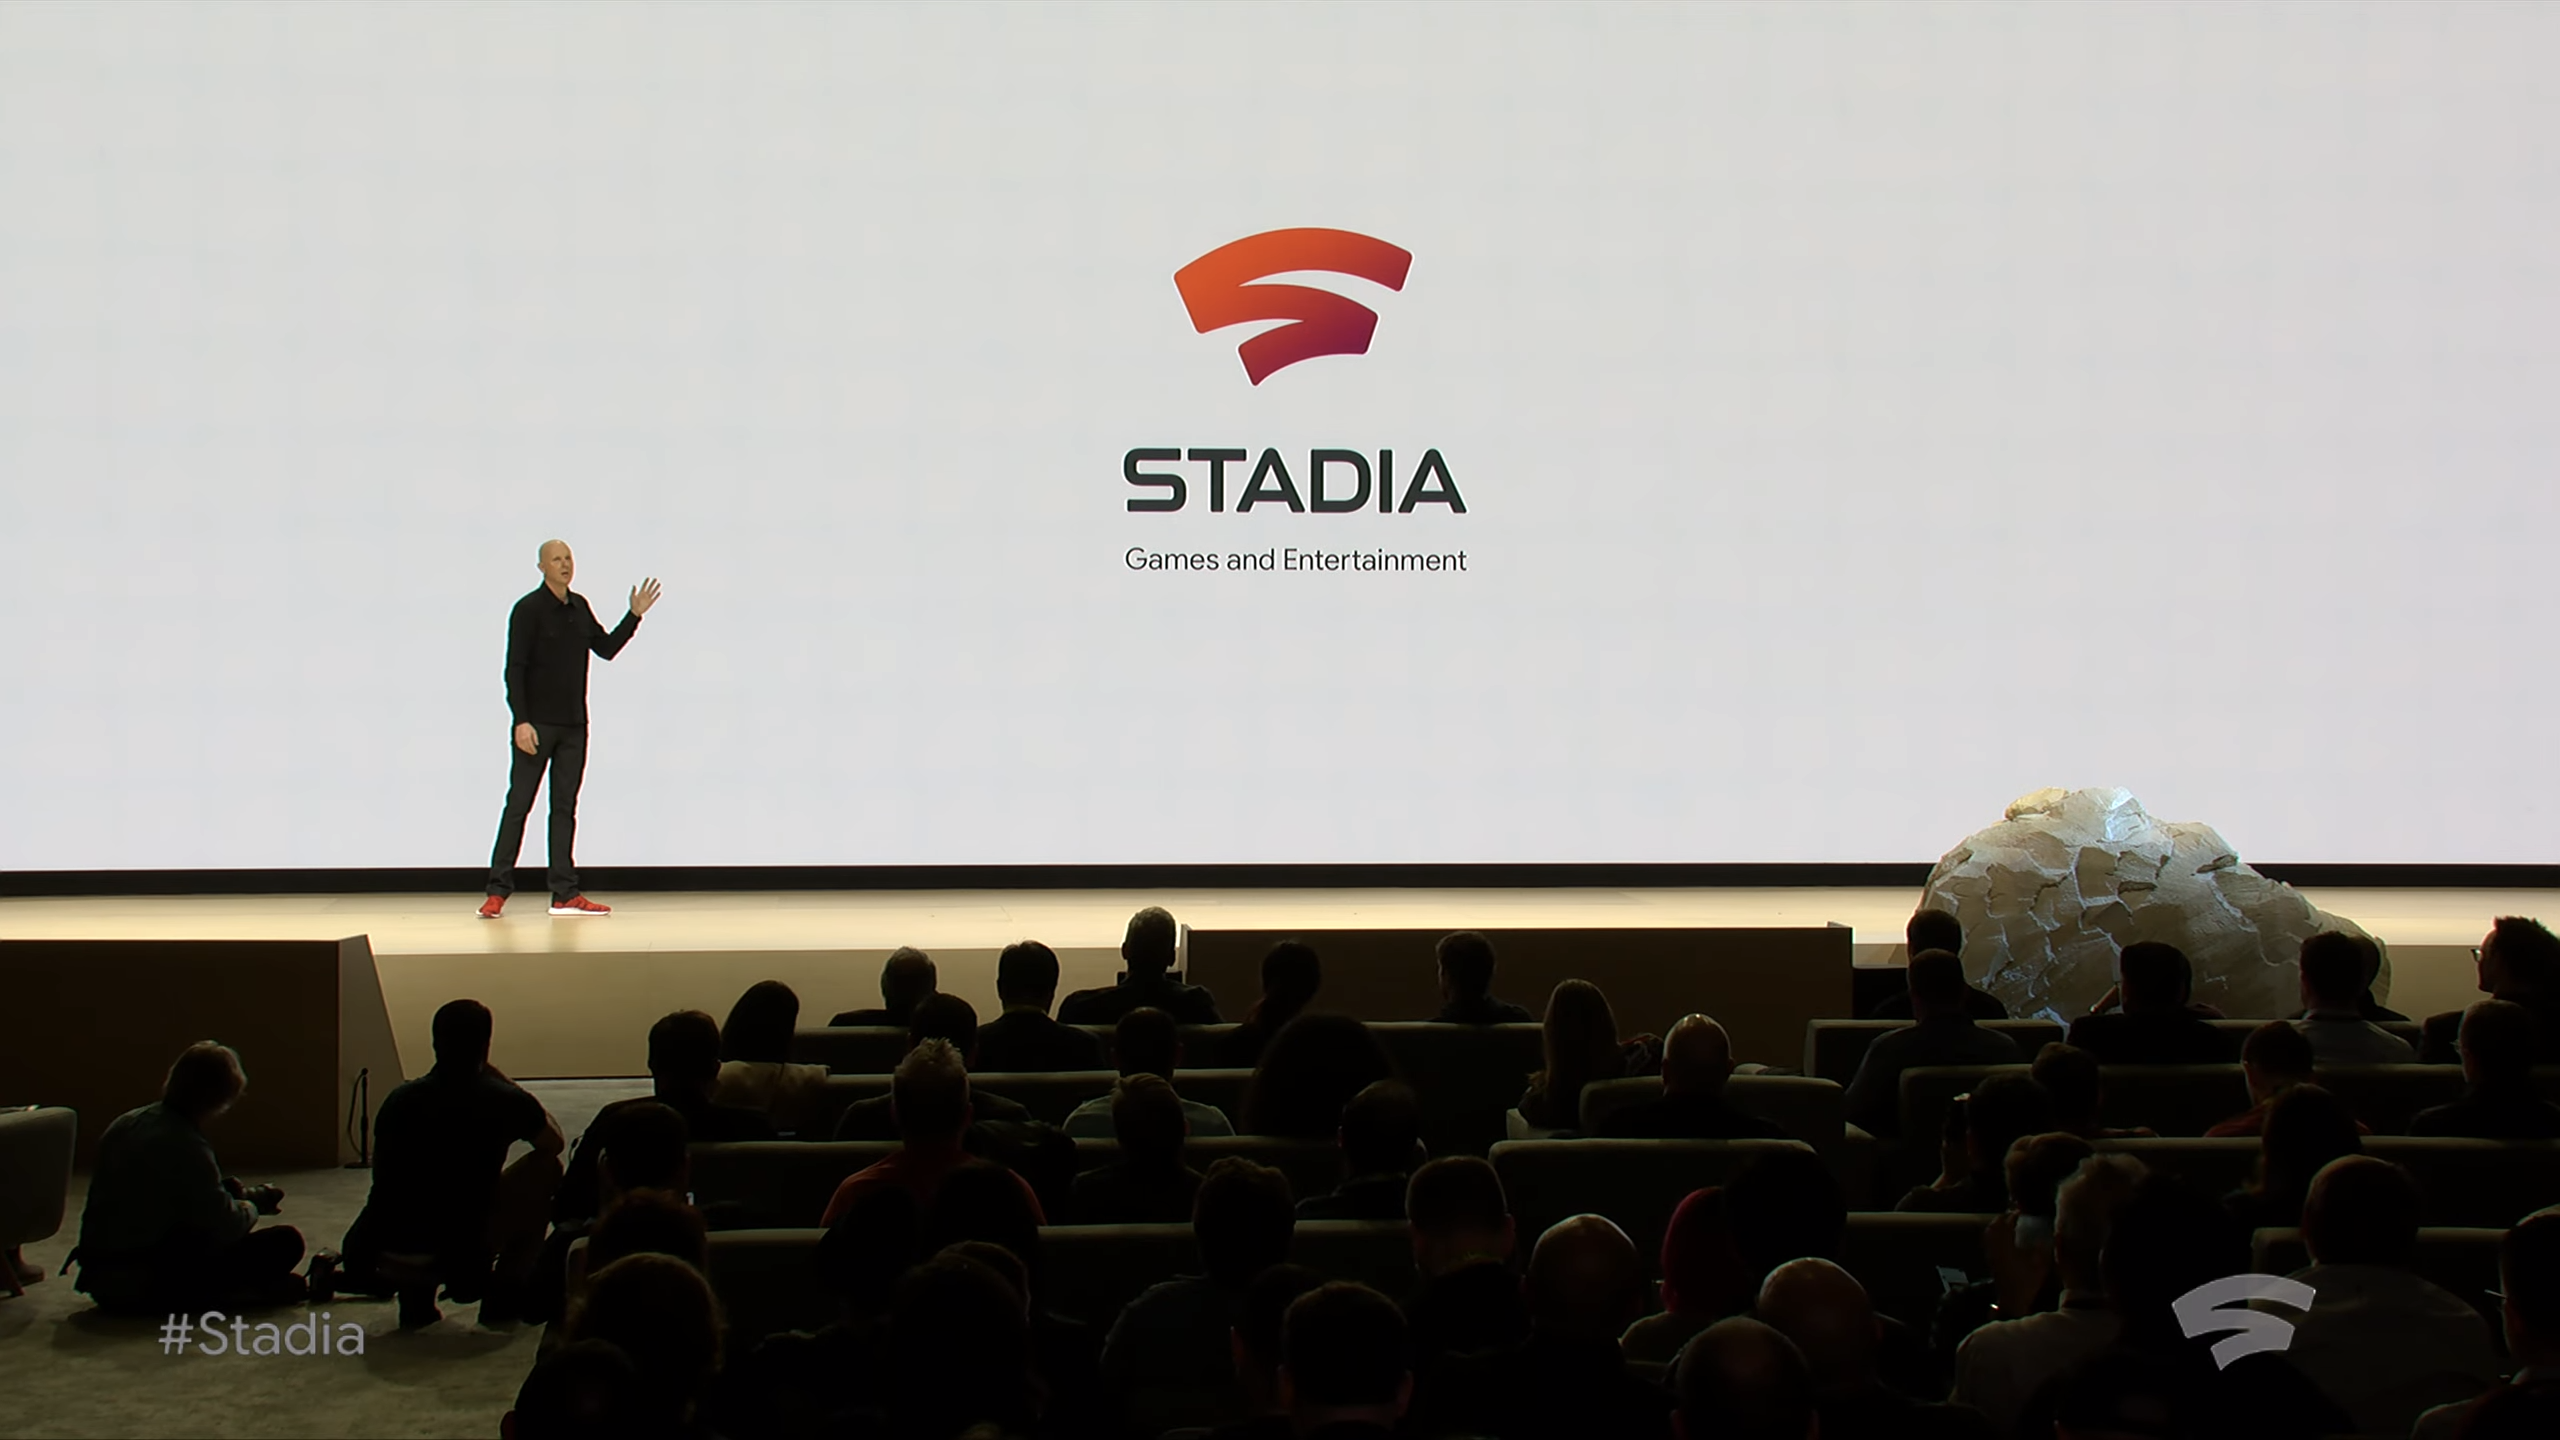 Google Announces Stadia: A Game Streaming Service